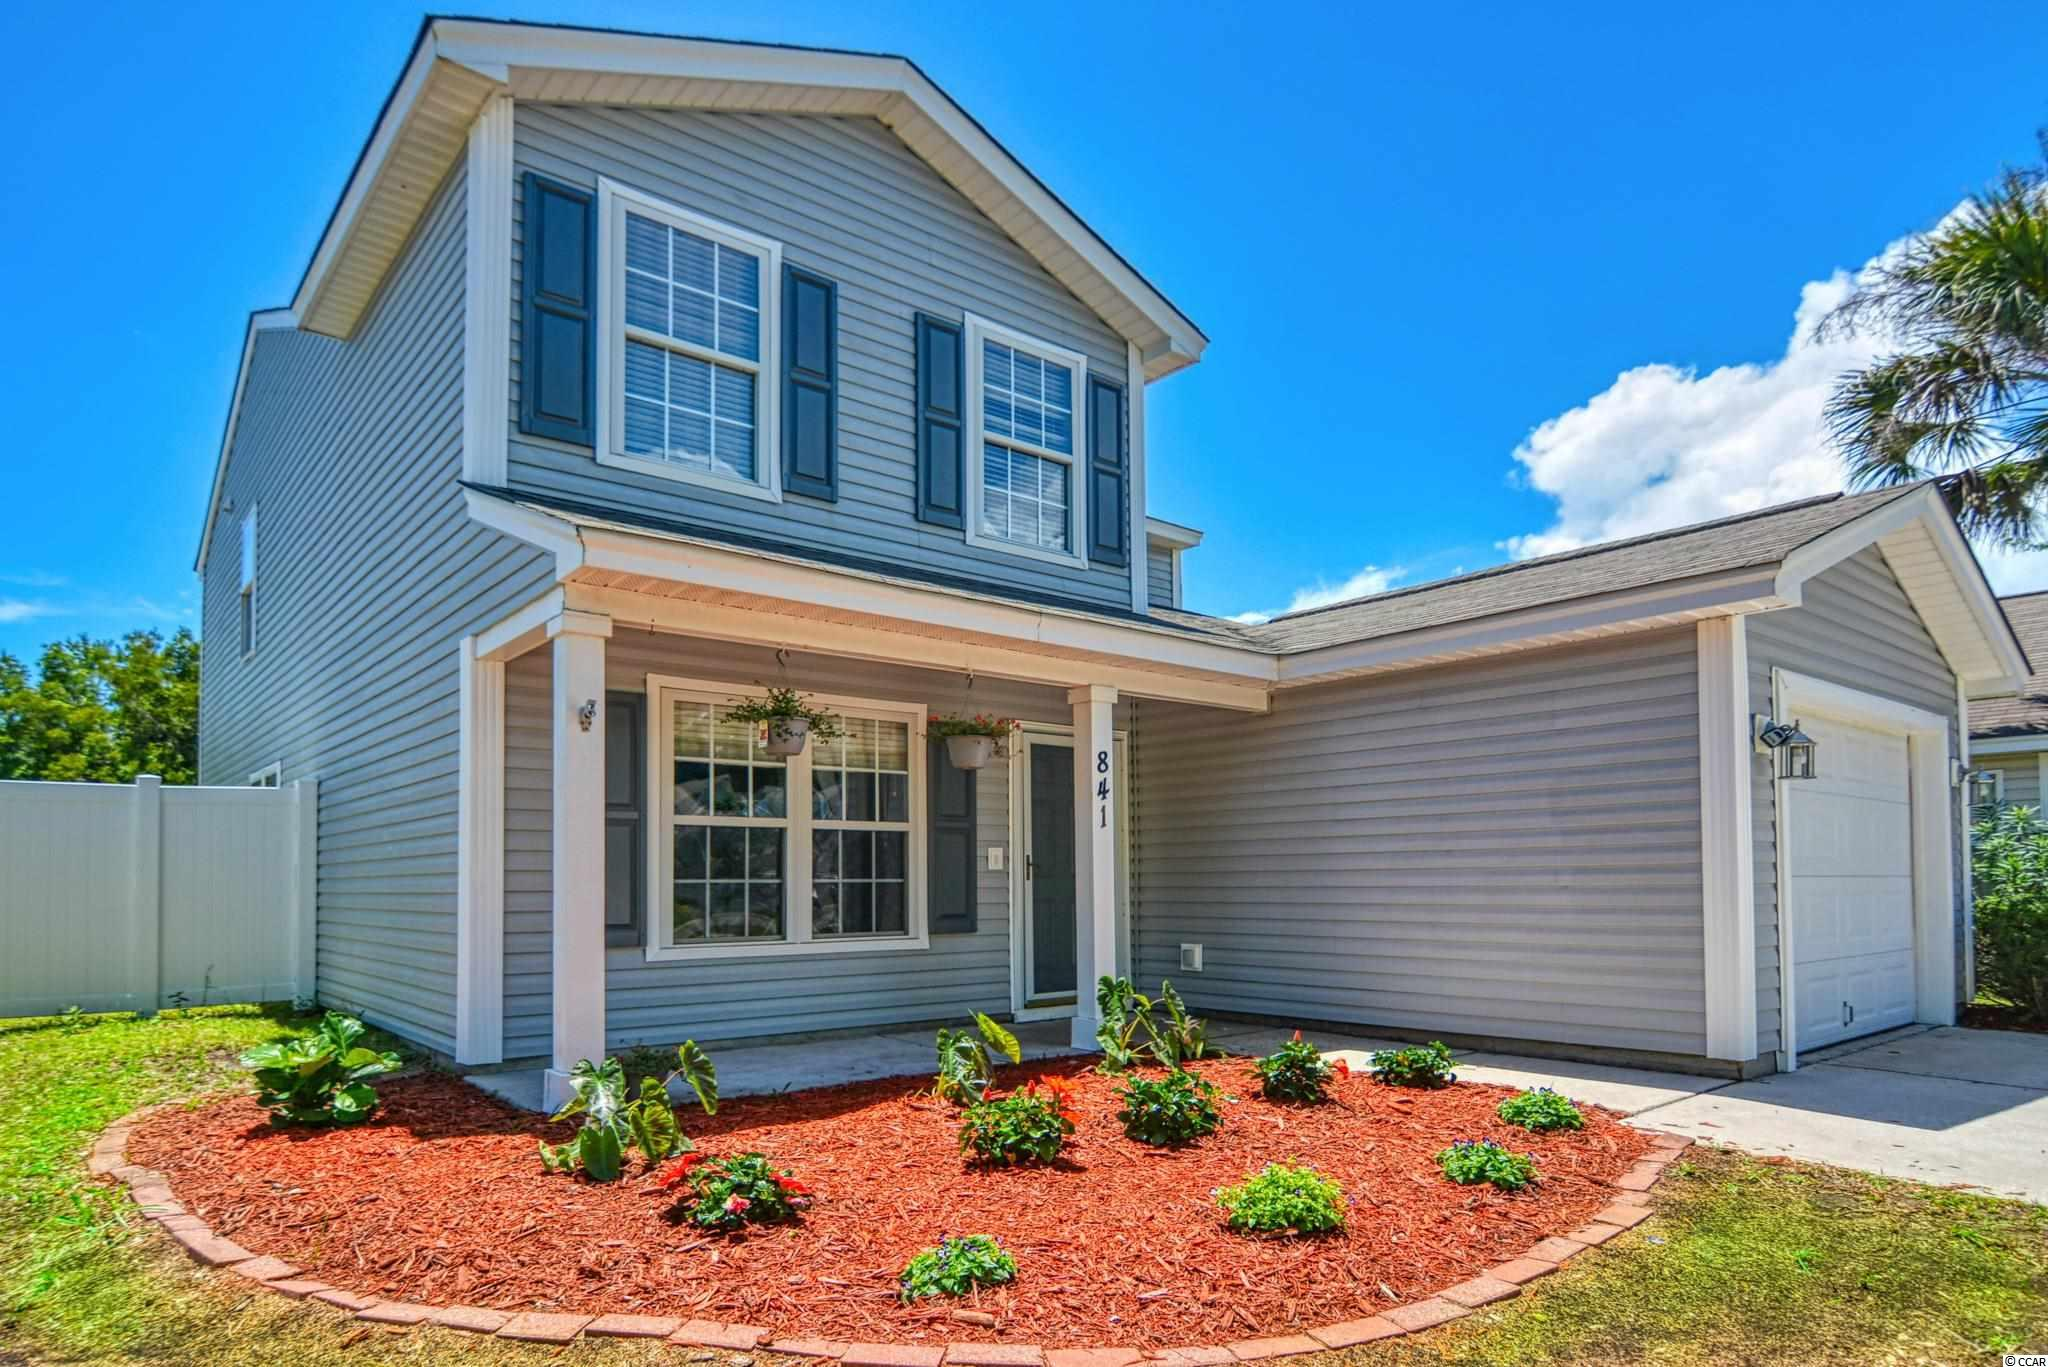 NEW FLOORING and PAINT throughout this MOVE-IN READY 4bed/3.5ba home in the quiet community of Avalon which is located in the award-winning Carolina Forest school district. Large open floorplan, very spacious backyard and lots of bedrooms makes this a perfect family home. Primary bedroom on the 1st floor with 3 others upstairs also allows for great multi-generational living. Plus, one of the upstairs bedrooms has a large nook off the closet which is the perfect study area, playroom, toy storage or gaming room. This neighborhood has tons to offer including: pool, playground, grilling/picnic area, volleyball, soccer and basketball courts. Avalon is located close to restaurants, shopping, the Myrtle Beach airport, golf and all the entertainment attractions the Grand Strand has to offer. Make your appointment today to see this beautiful home! Short drive to everything Myrtle Beach has to offer including Coastal Grande Mall, 2-Tanger Outlets, public marinas, public docks, landings, restaurants, golf courses, shops, entertainment, Myrtle Beach International Airport, Broadway At The Beach, The Market Common, Barefoot Resort and Coastal Carolina University (CCU). Also, only 90 miles to beautiful Charleston, SC!